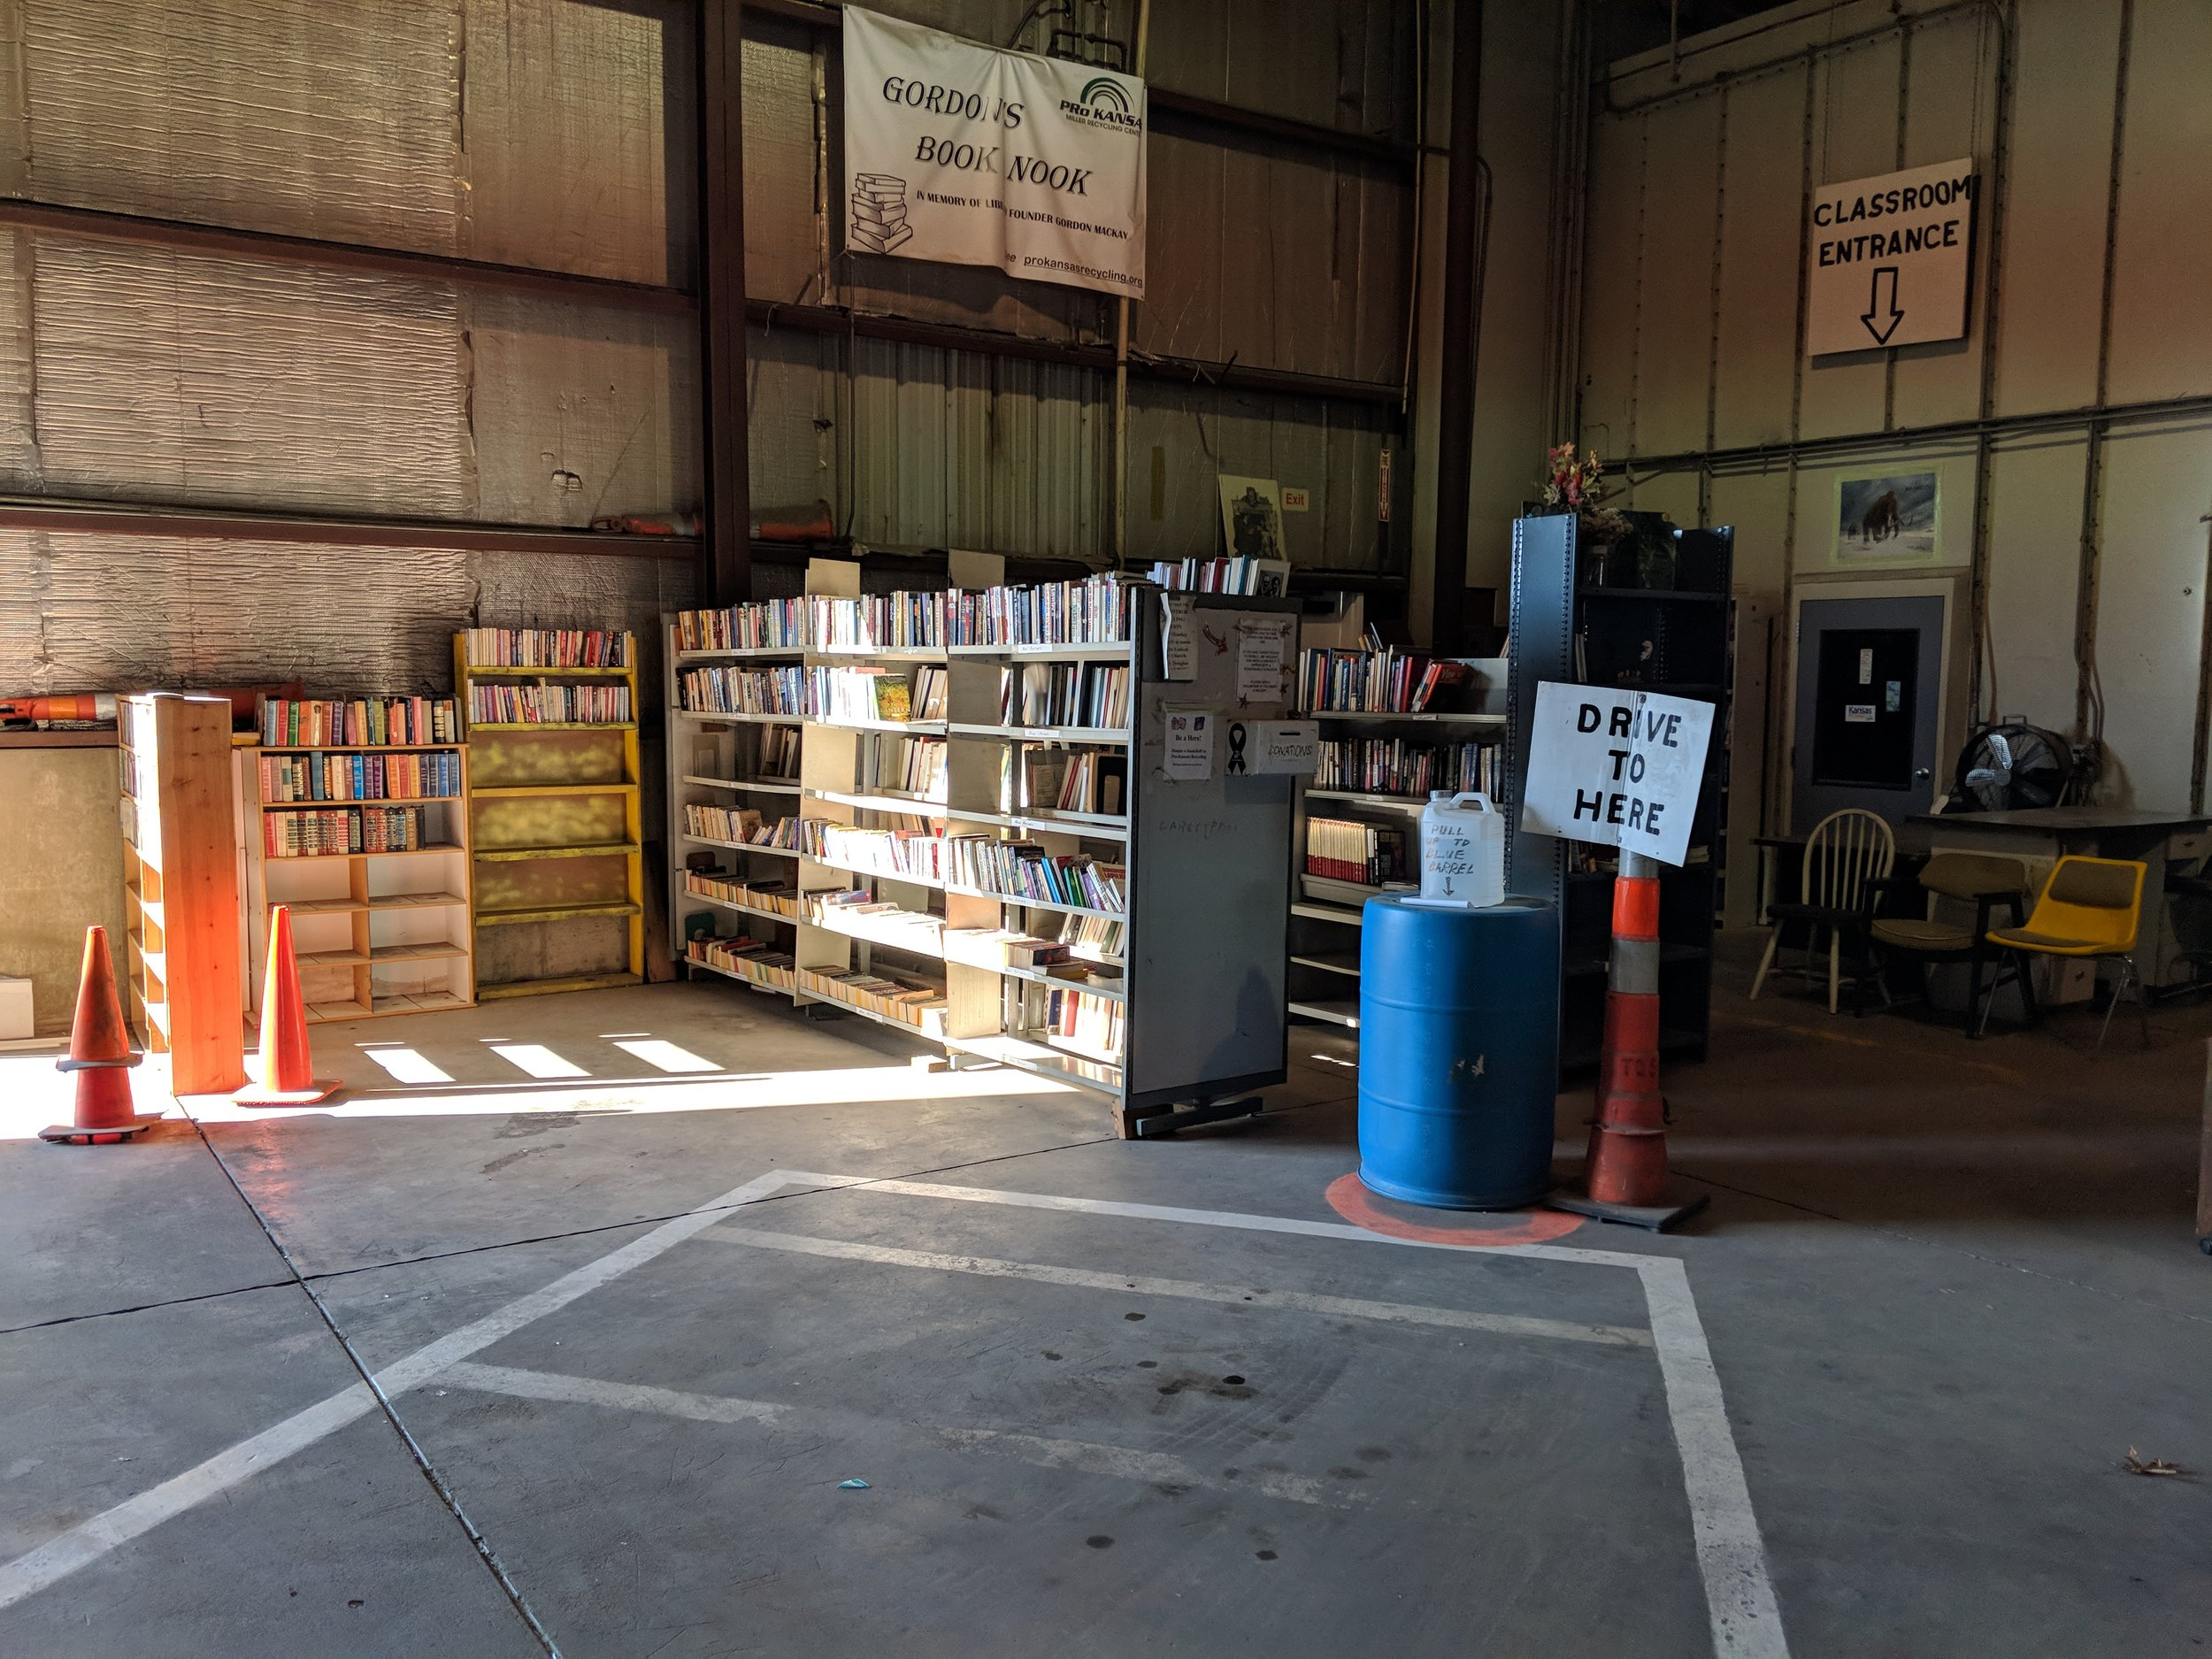 Gordon's Book Nook. Take one, leave one library open to the public.